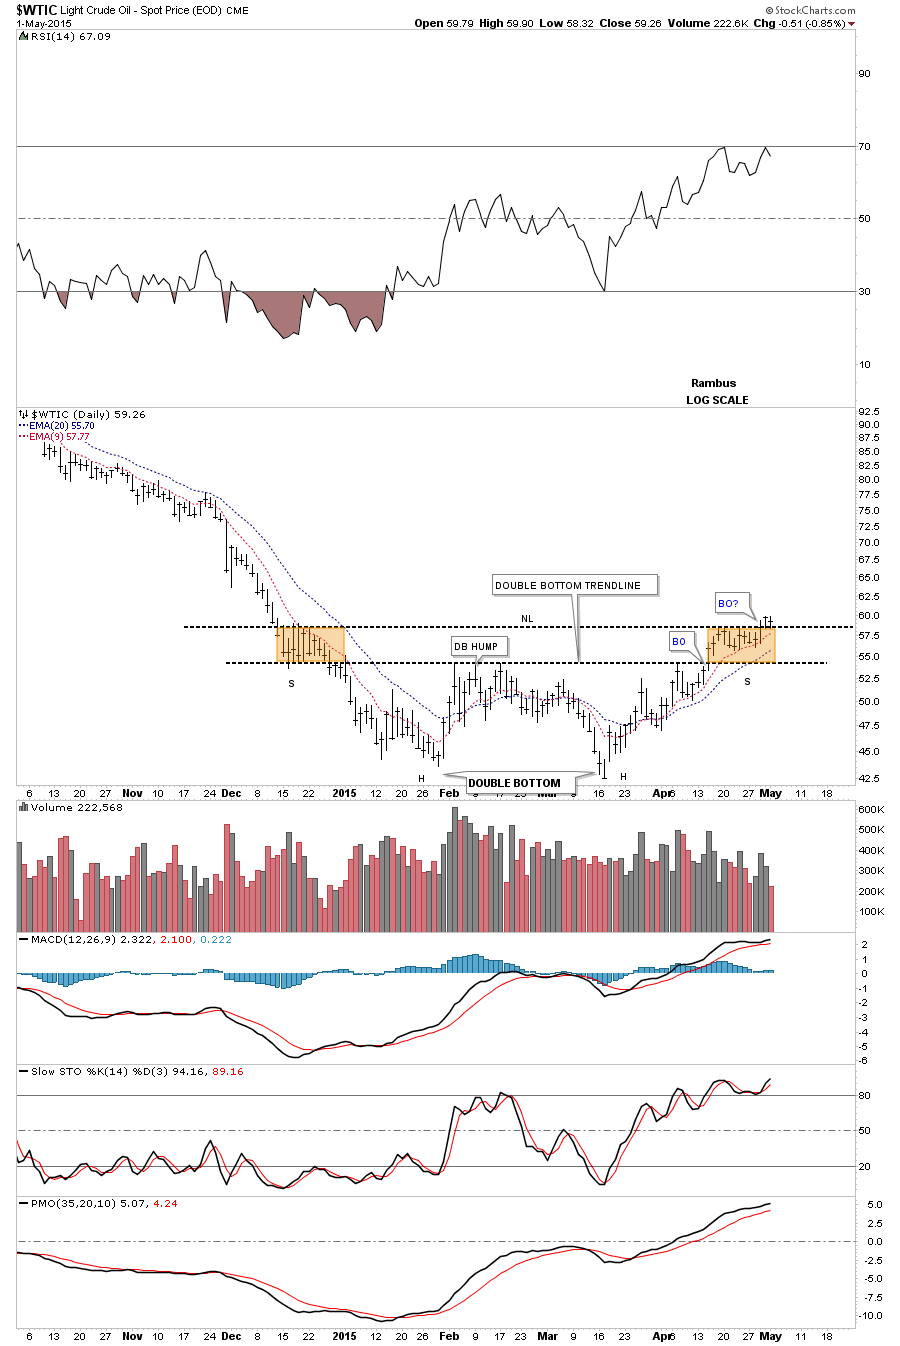 WTIC DAY